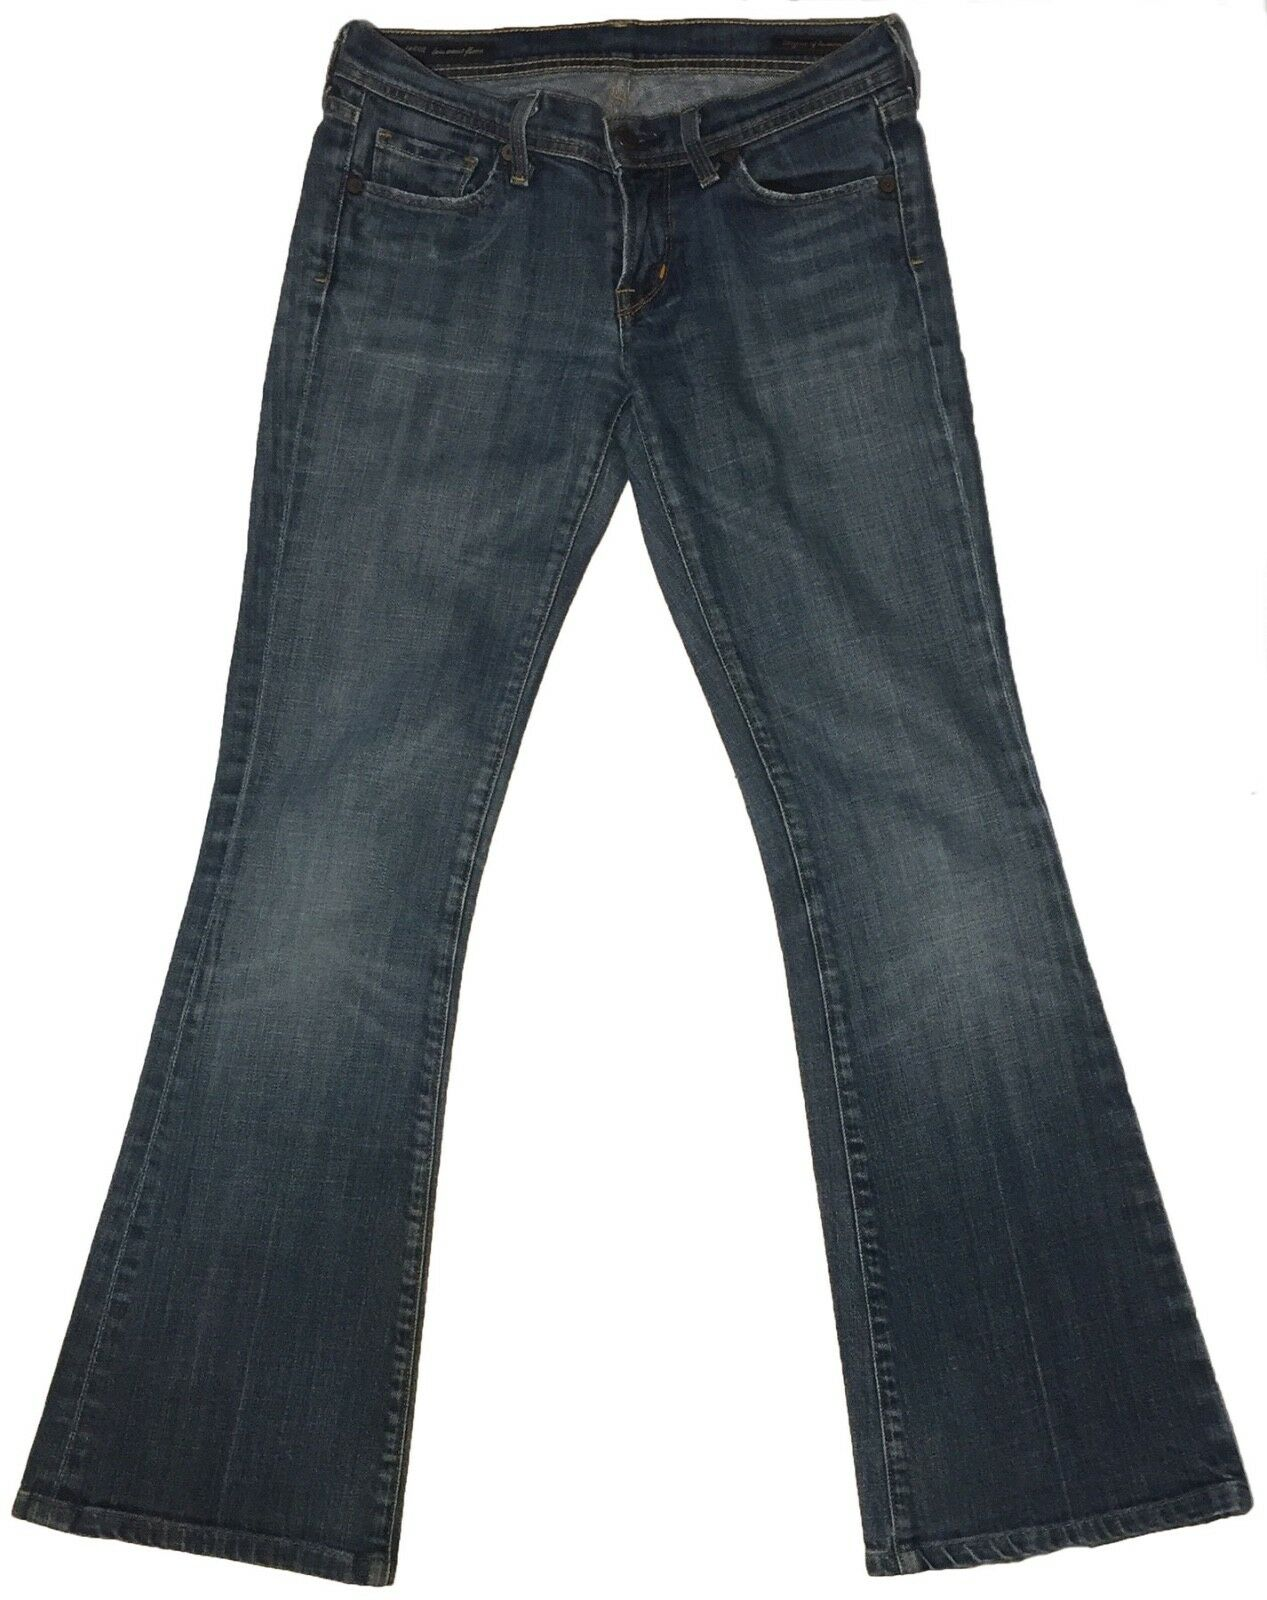 Citizen Of Humanity Ingrid Stretch Low Waist Flare bluee Women Jeans Size 26